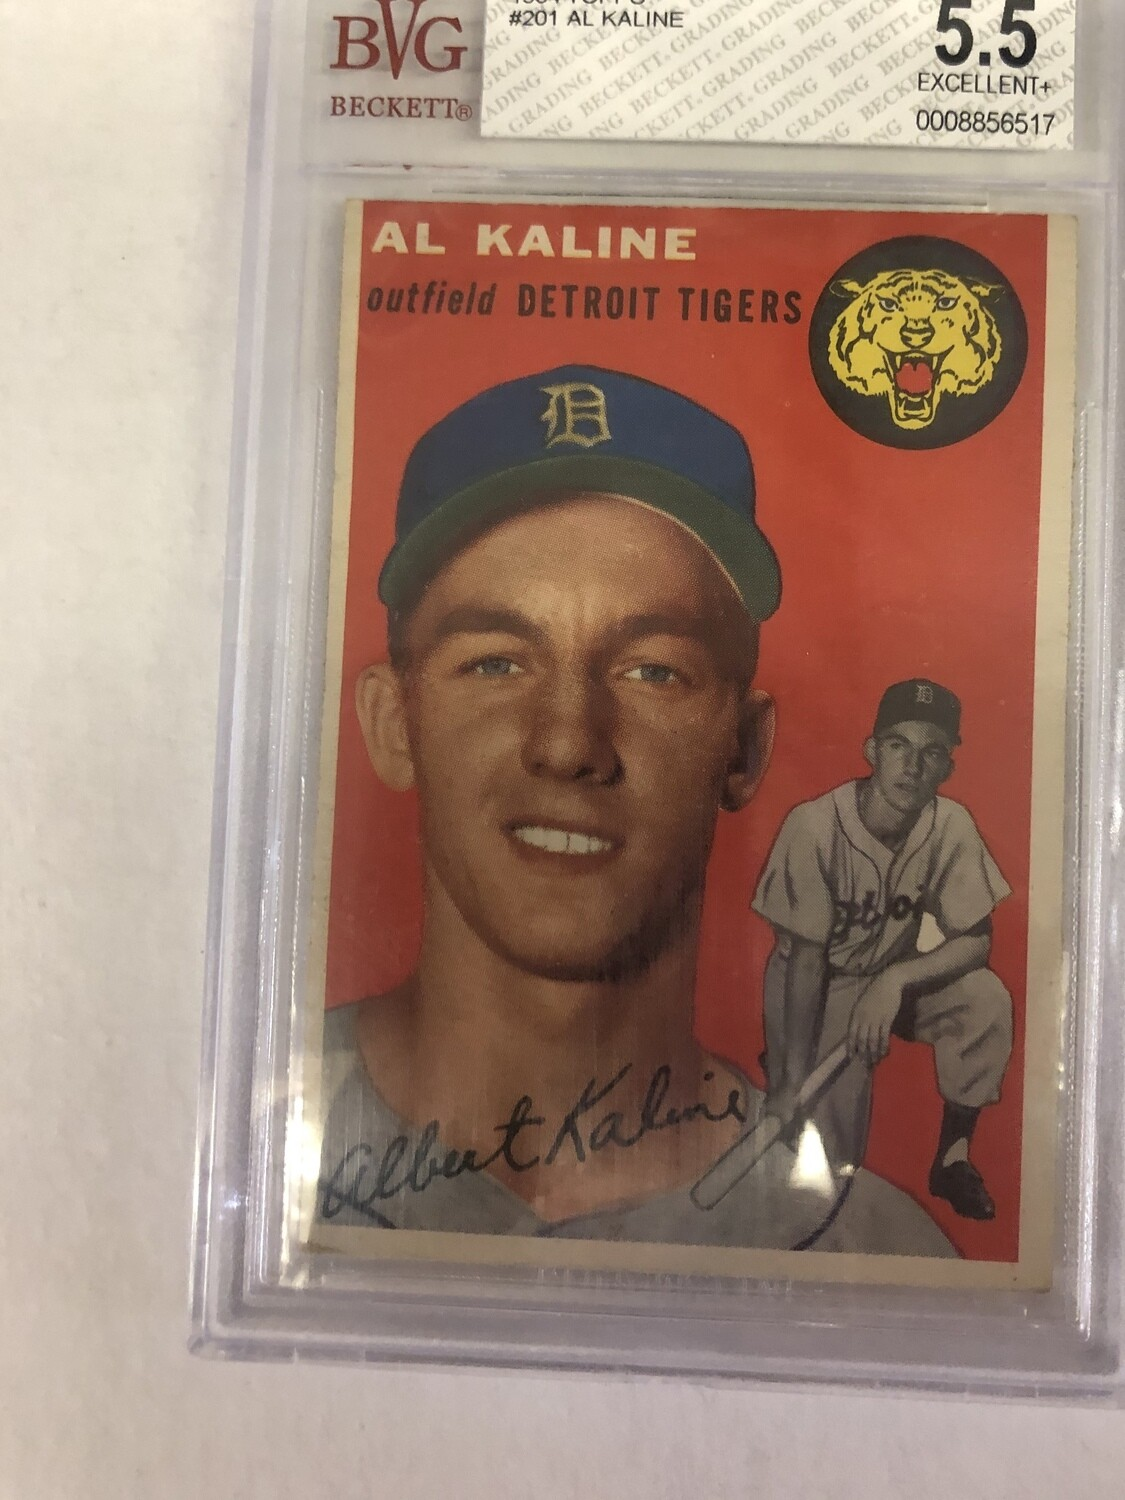 1954 Topps #201 Al Kaline, Beckett graded 5.5 $895